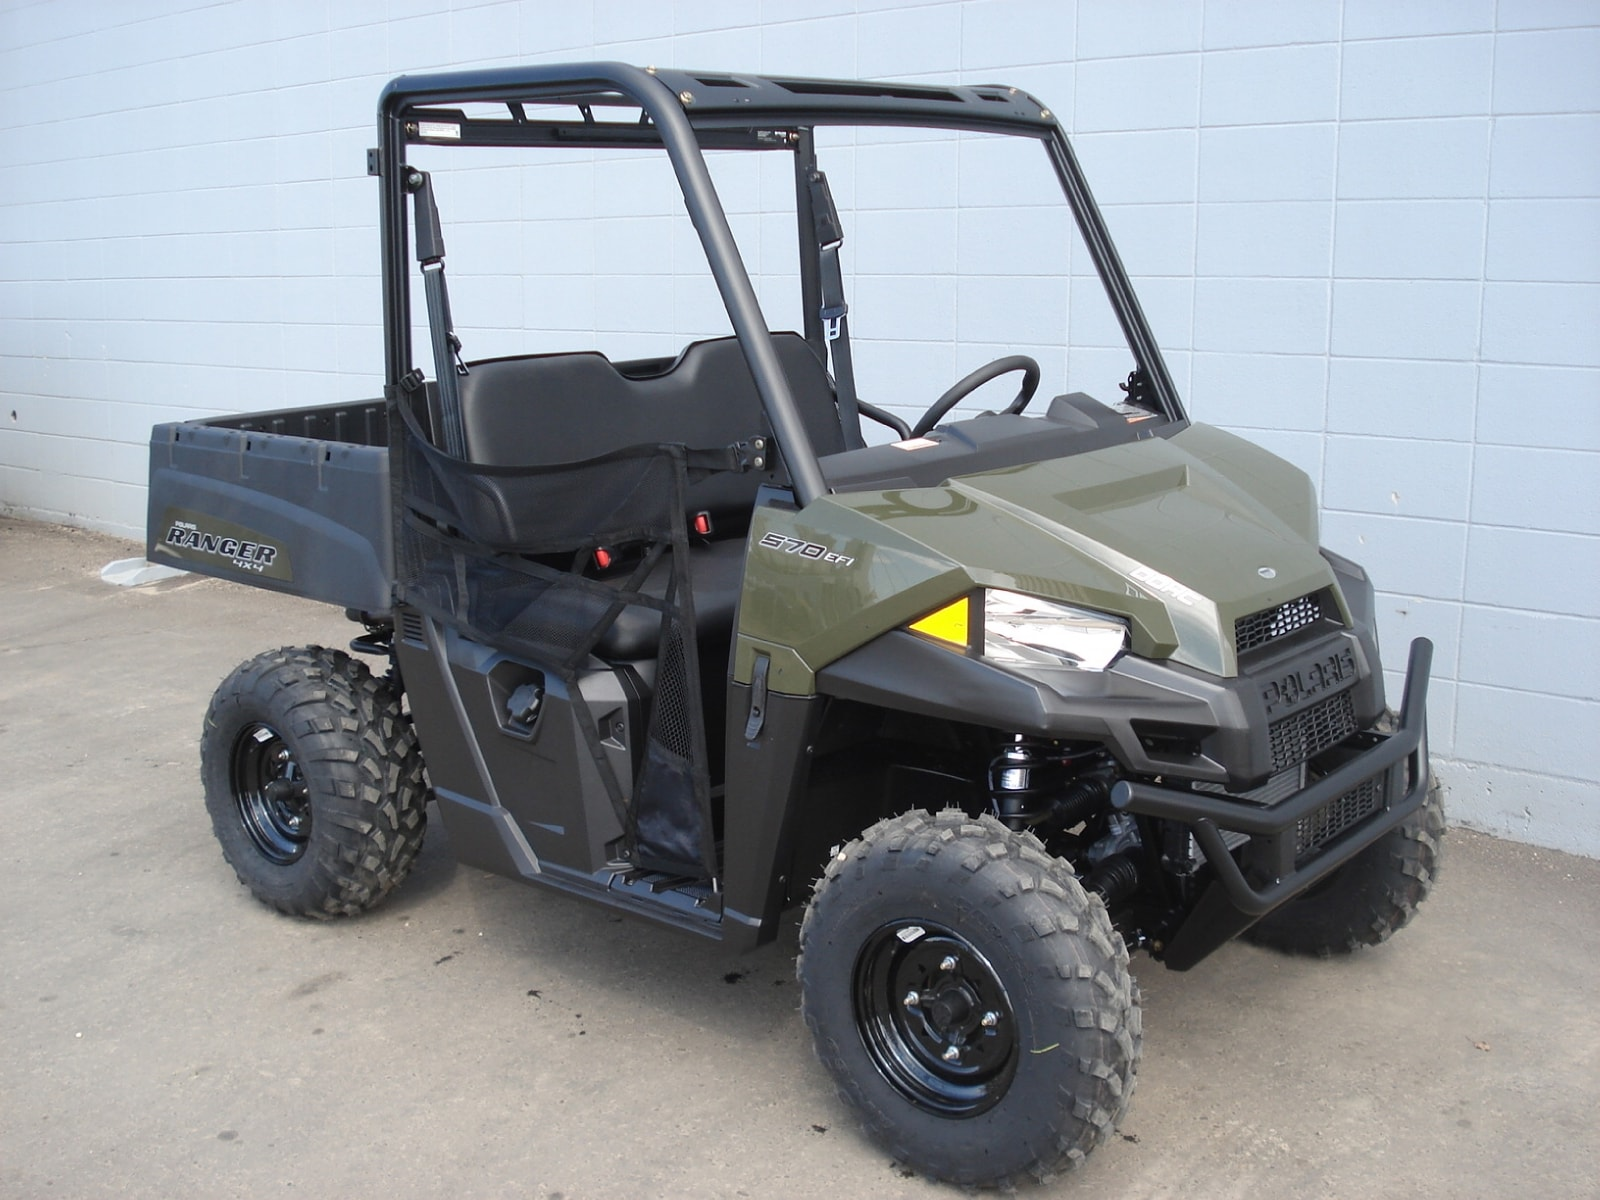 New 2016 Polaris Ranger 570 Efi For Sale